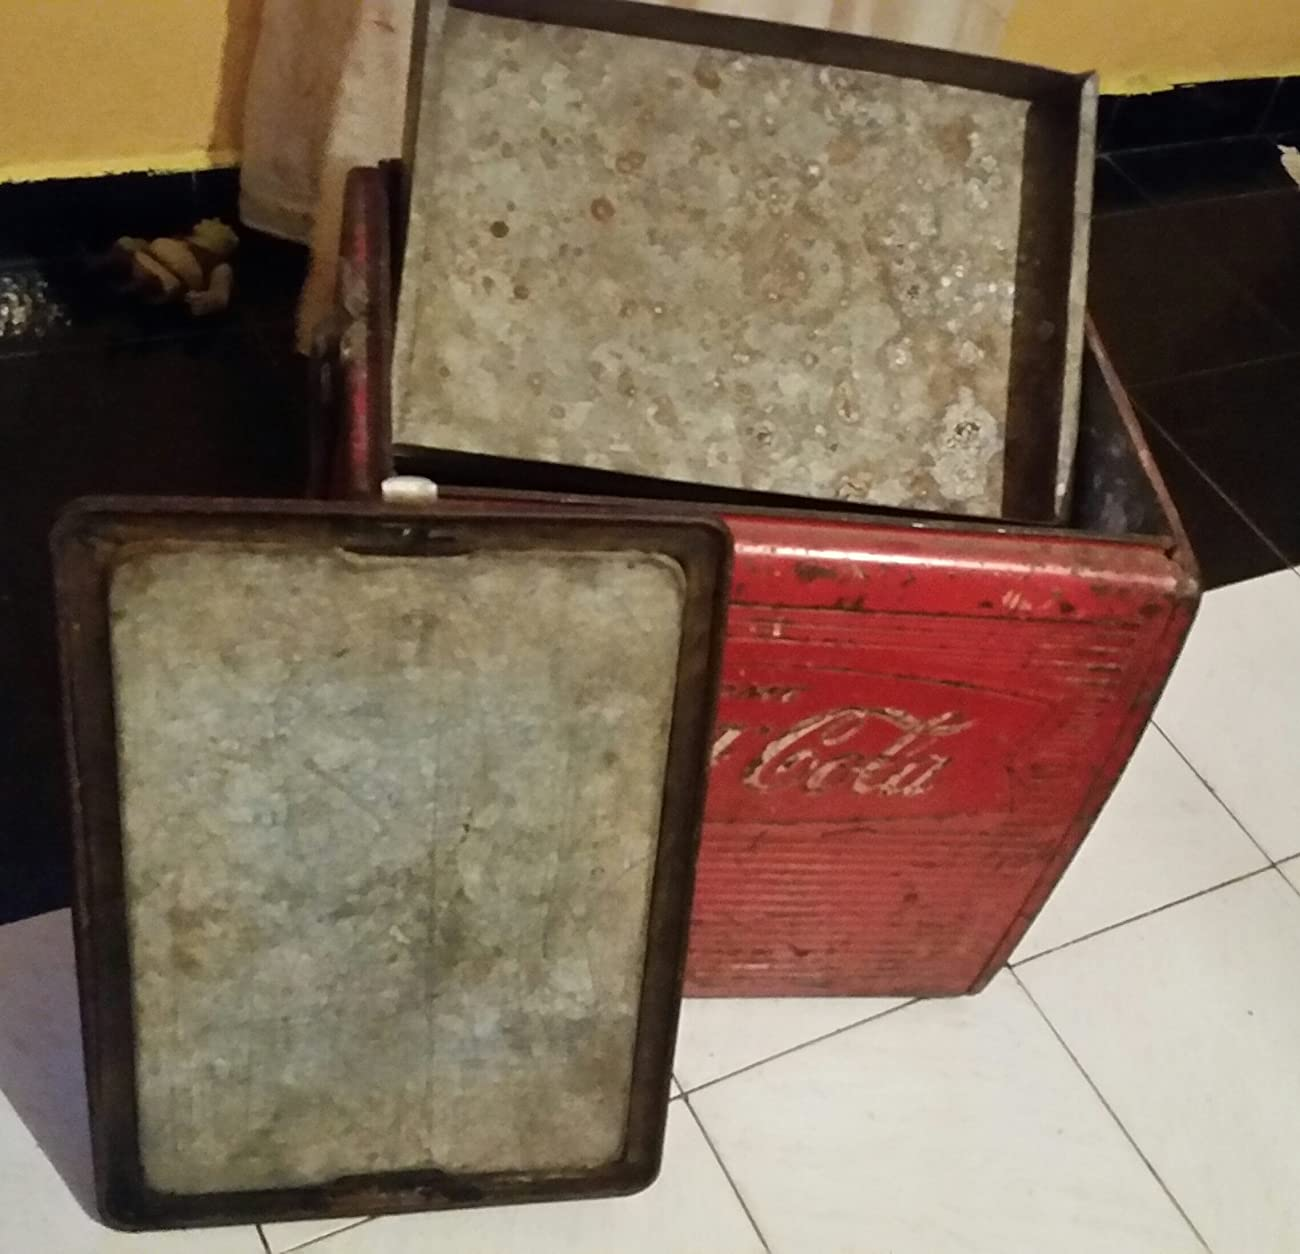 Vintage Coca Cola Coke 1950's Cooler Freezer In Fair Condition RARE 1